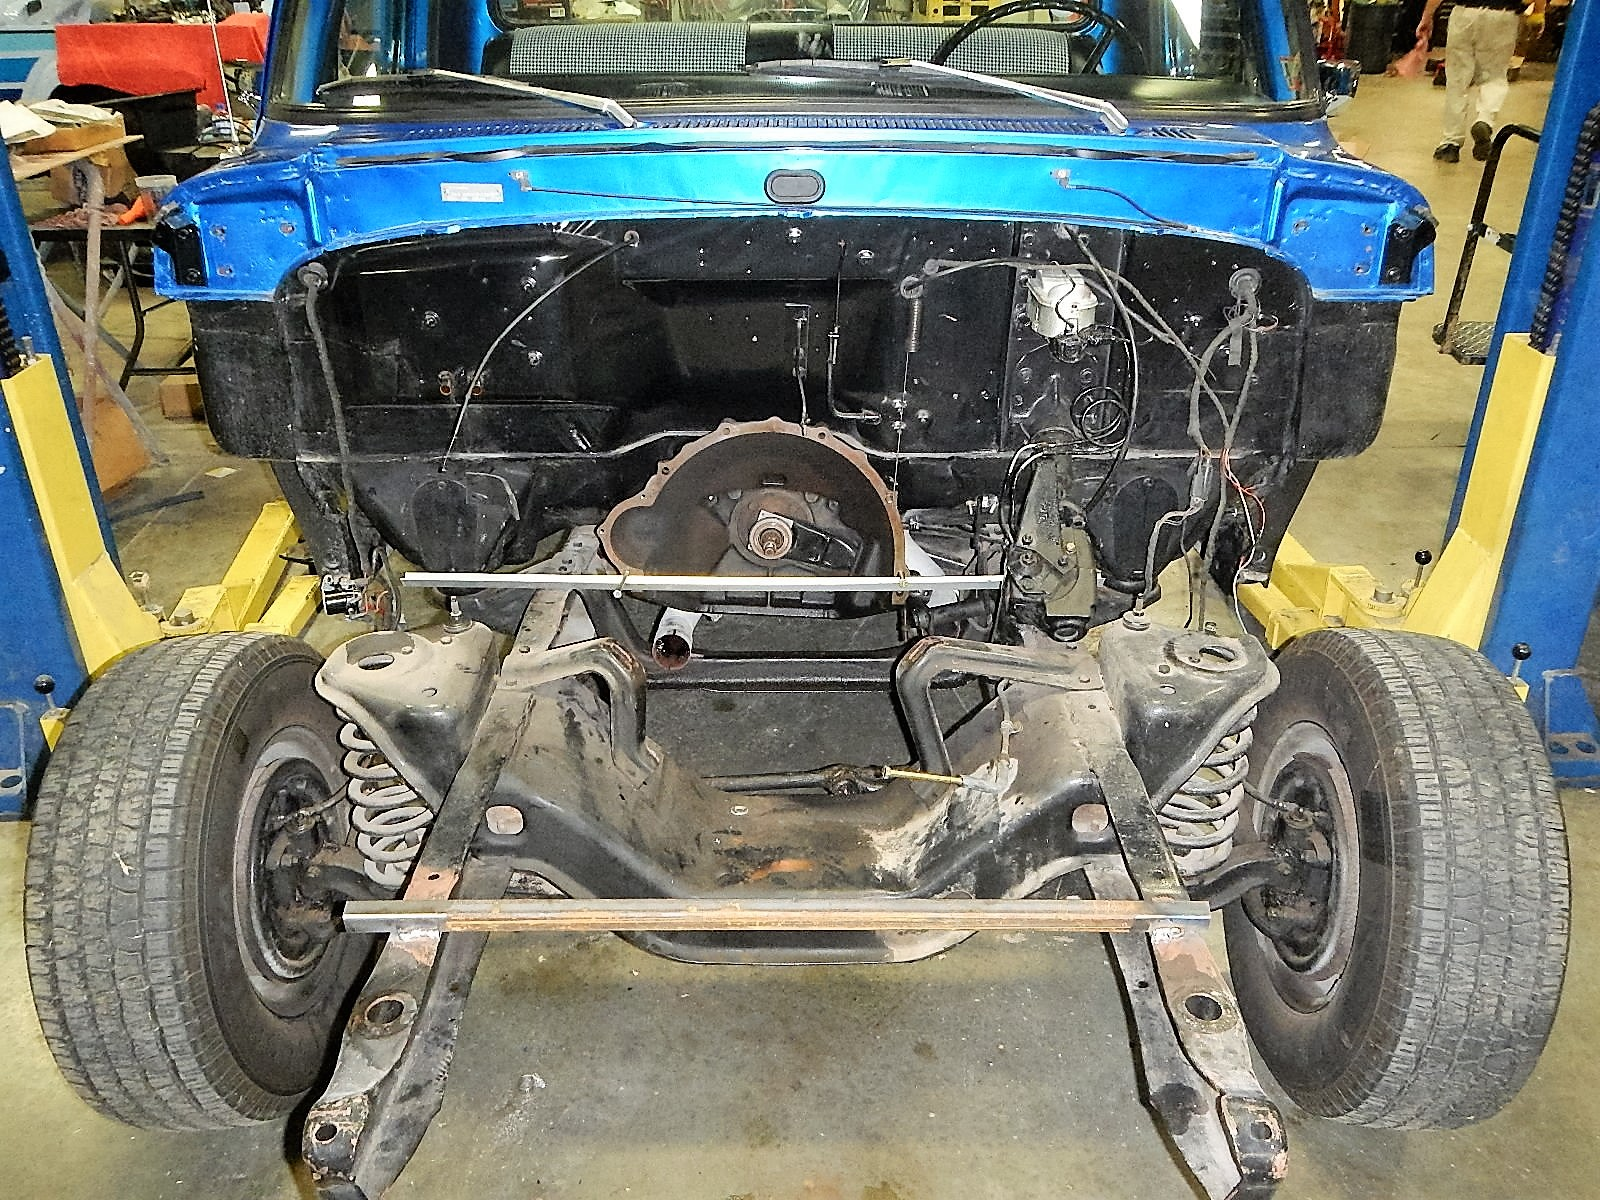 1968 Ford F-100 Front End Swap - Mercury Crown Vic  032.jpg